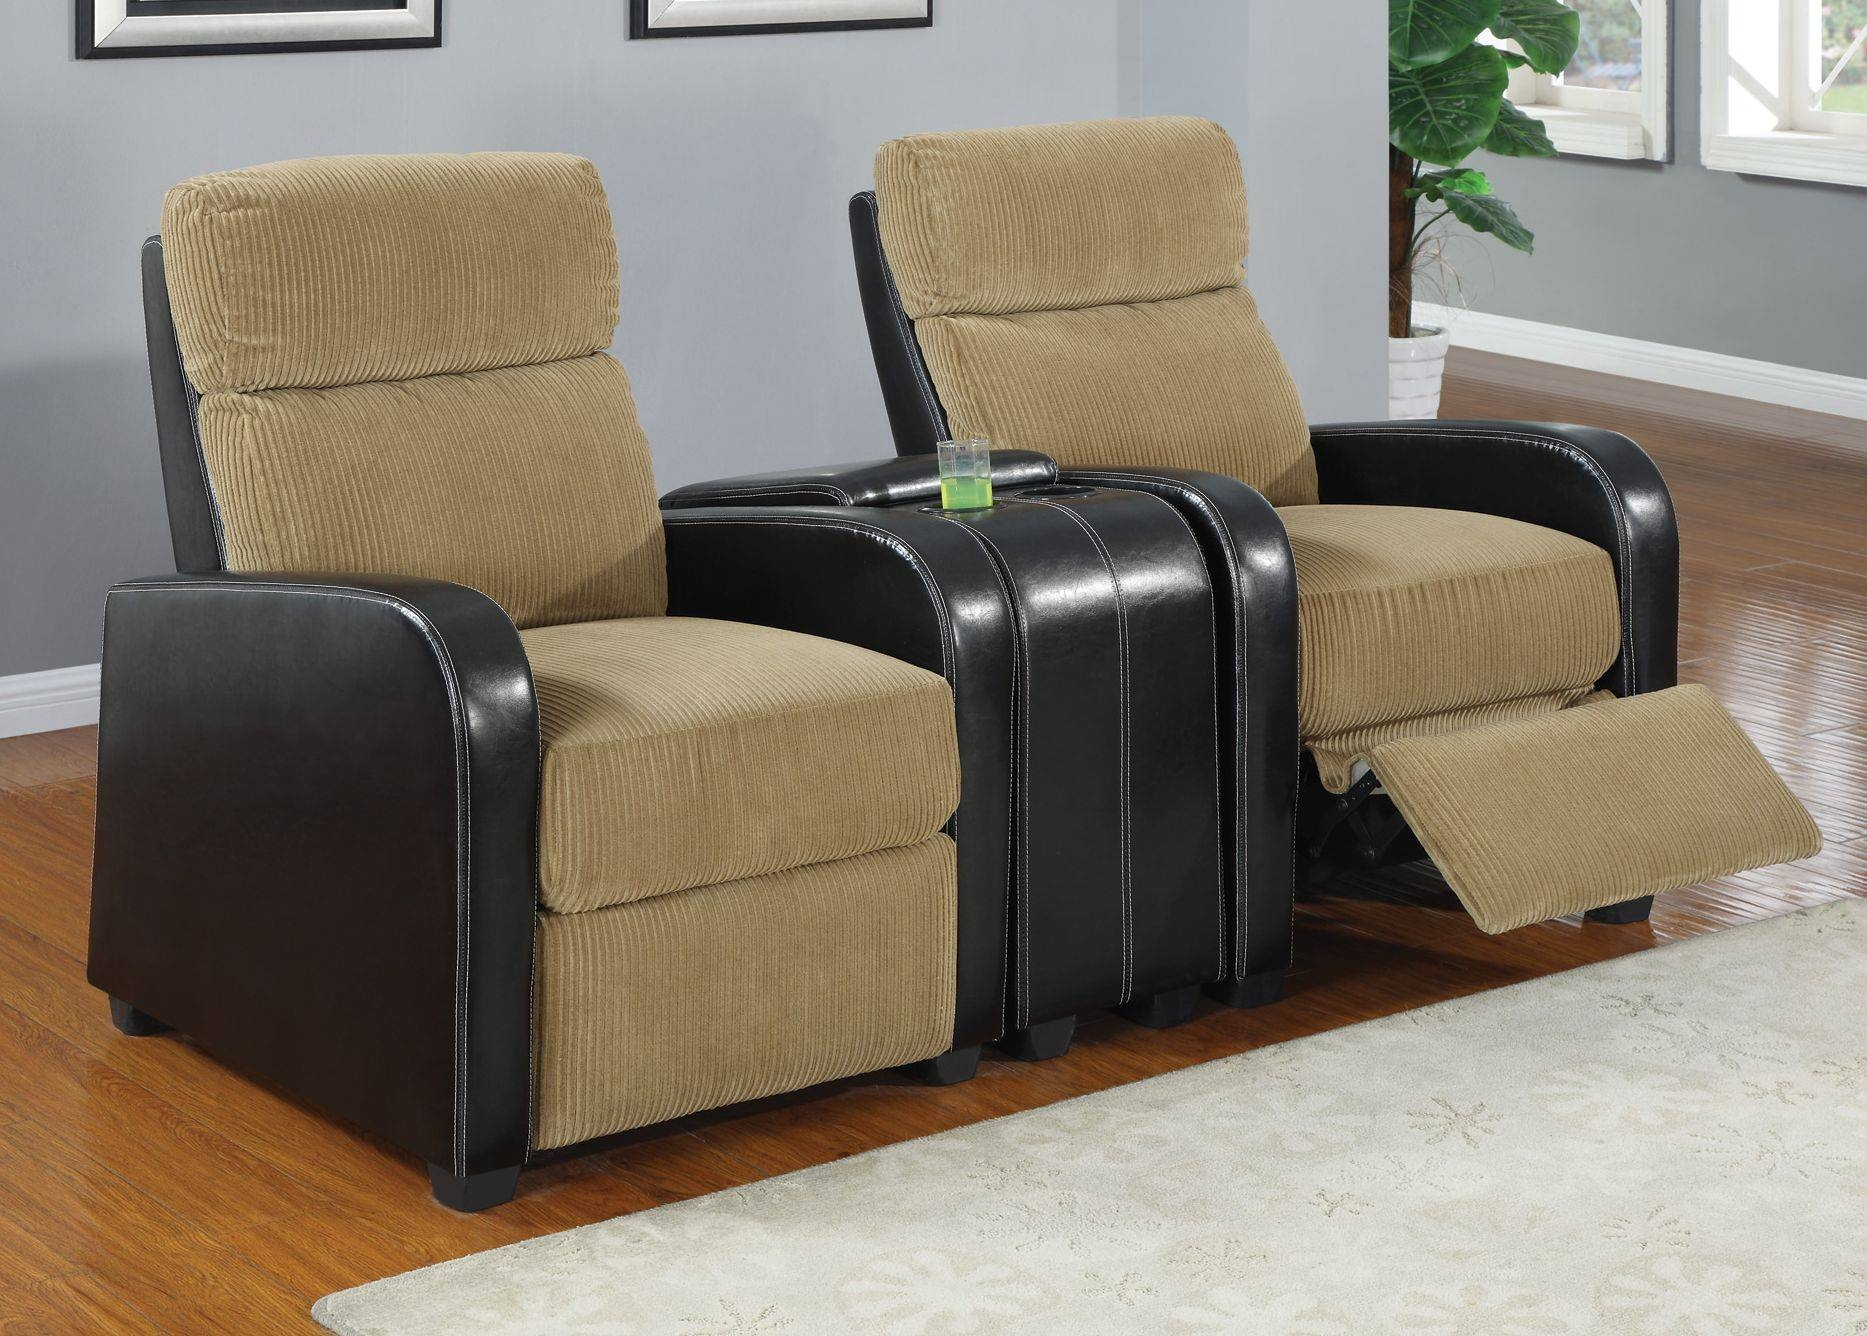 5 Piece Home Theater Sectional Sofa Radley 4 Piece Sectional Sofa